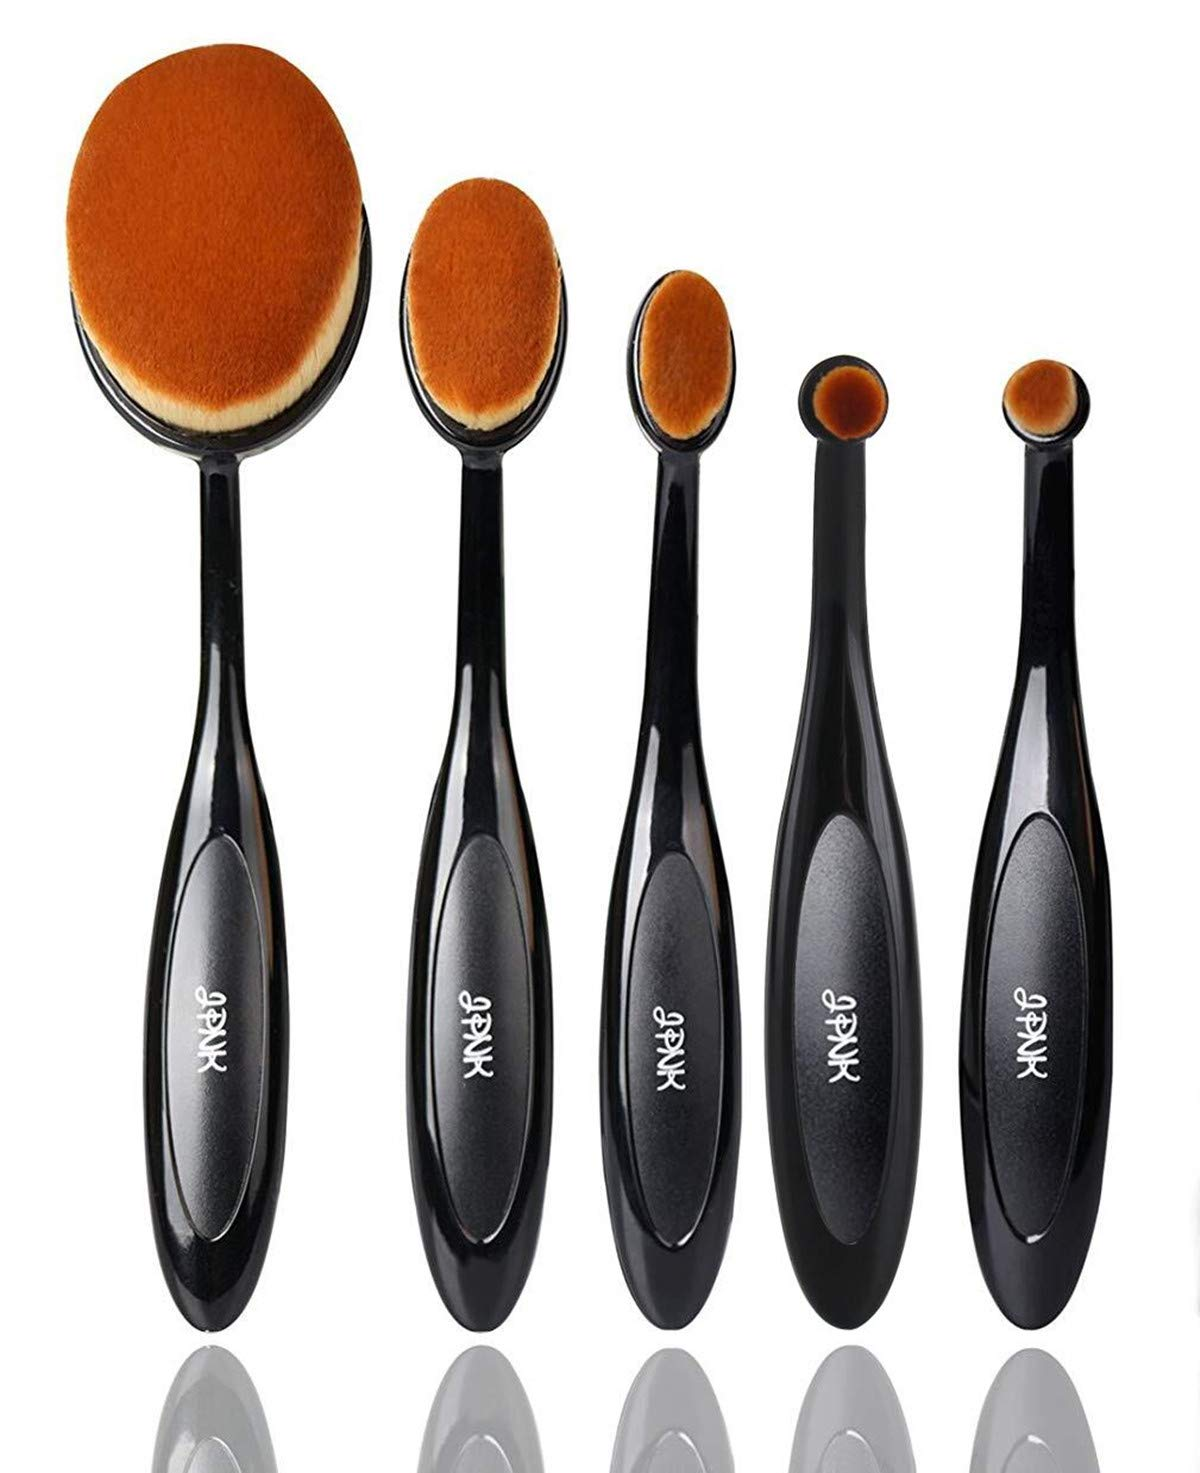 JPNK Oval Toothbrush Style Synthetic Powder Foundation Cream Makeup Brush (5 Pieces): Beauty